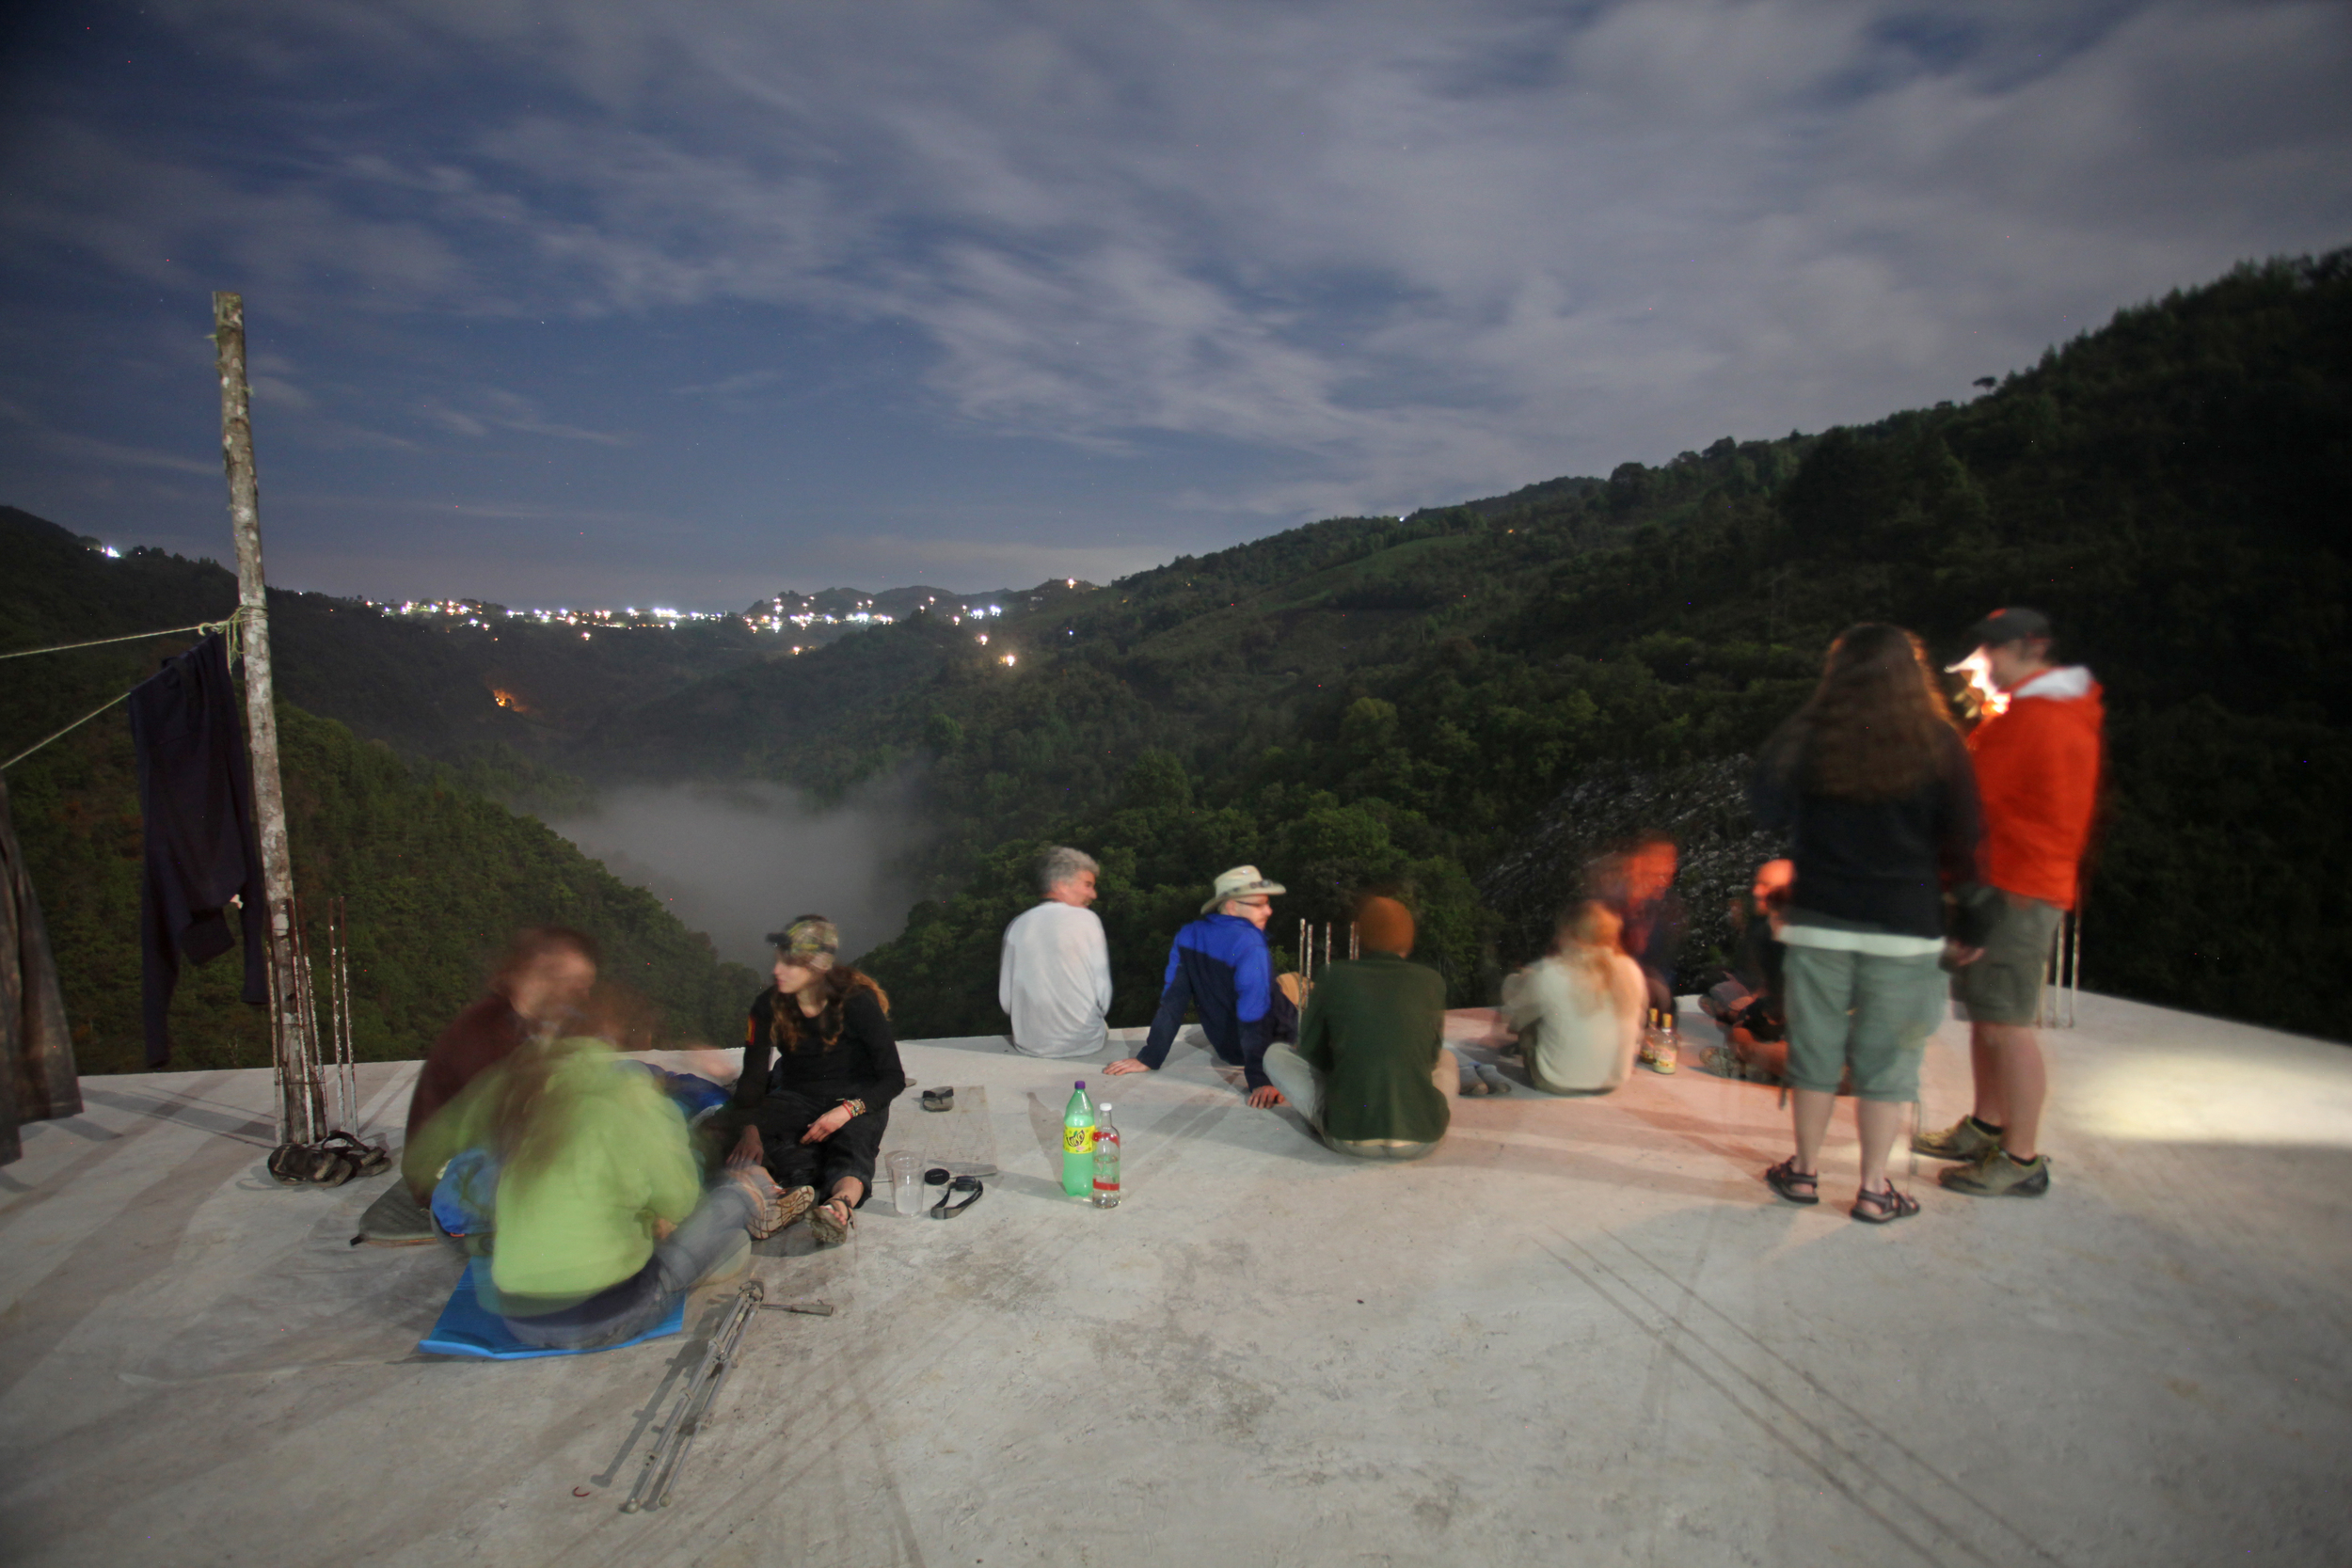 Socializing on a rooftop above Sótano de San Agustín.